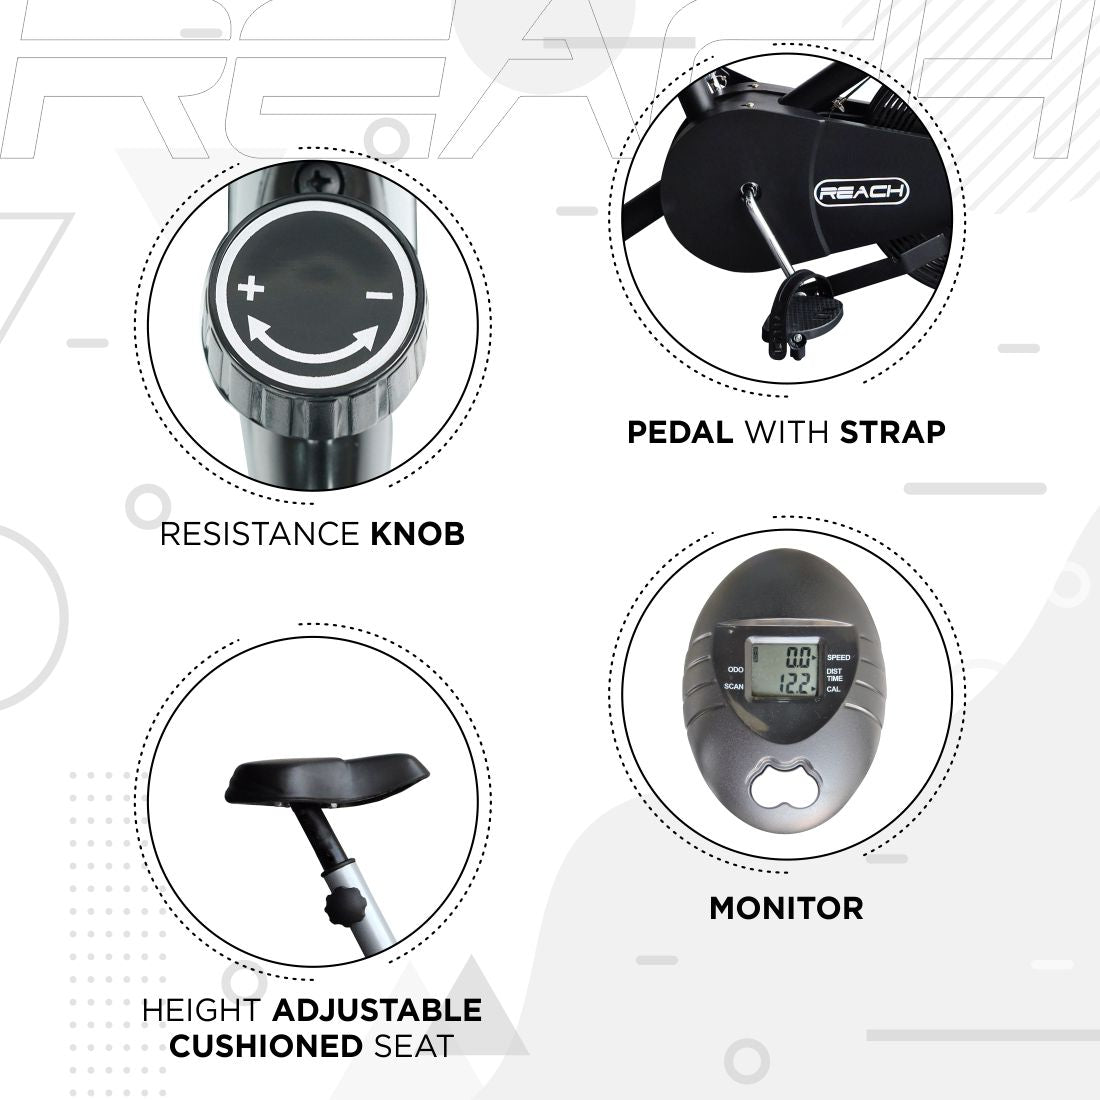 Basic features of a silver Reach Air Bike (stationary handles) like resistance, pedal, LCD monitor and adjustable seat.